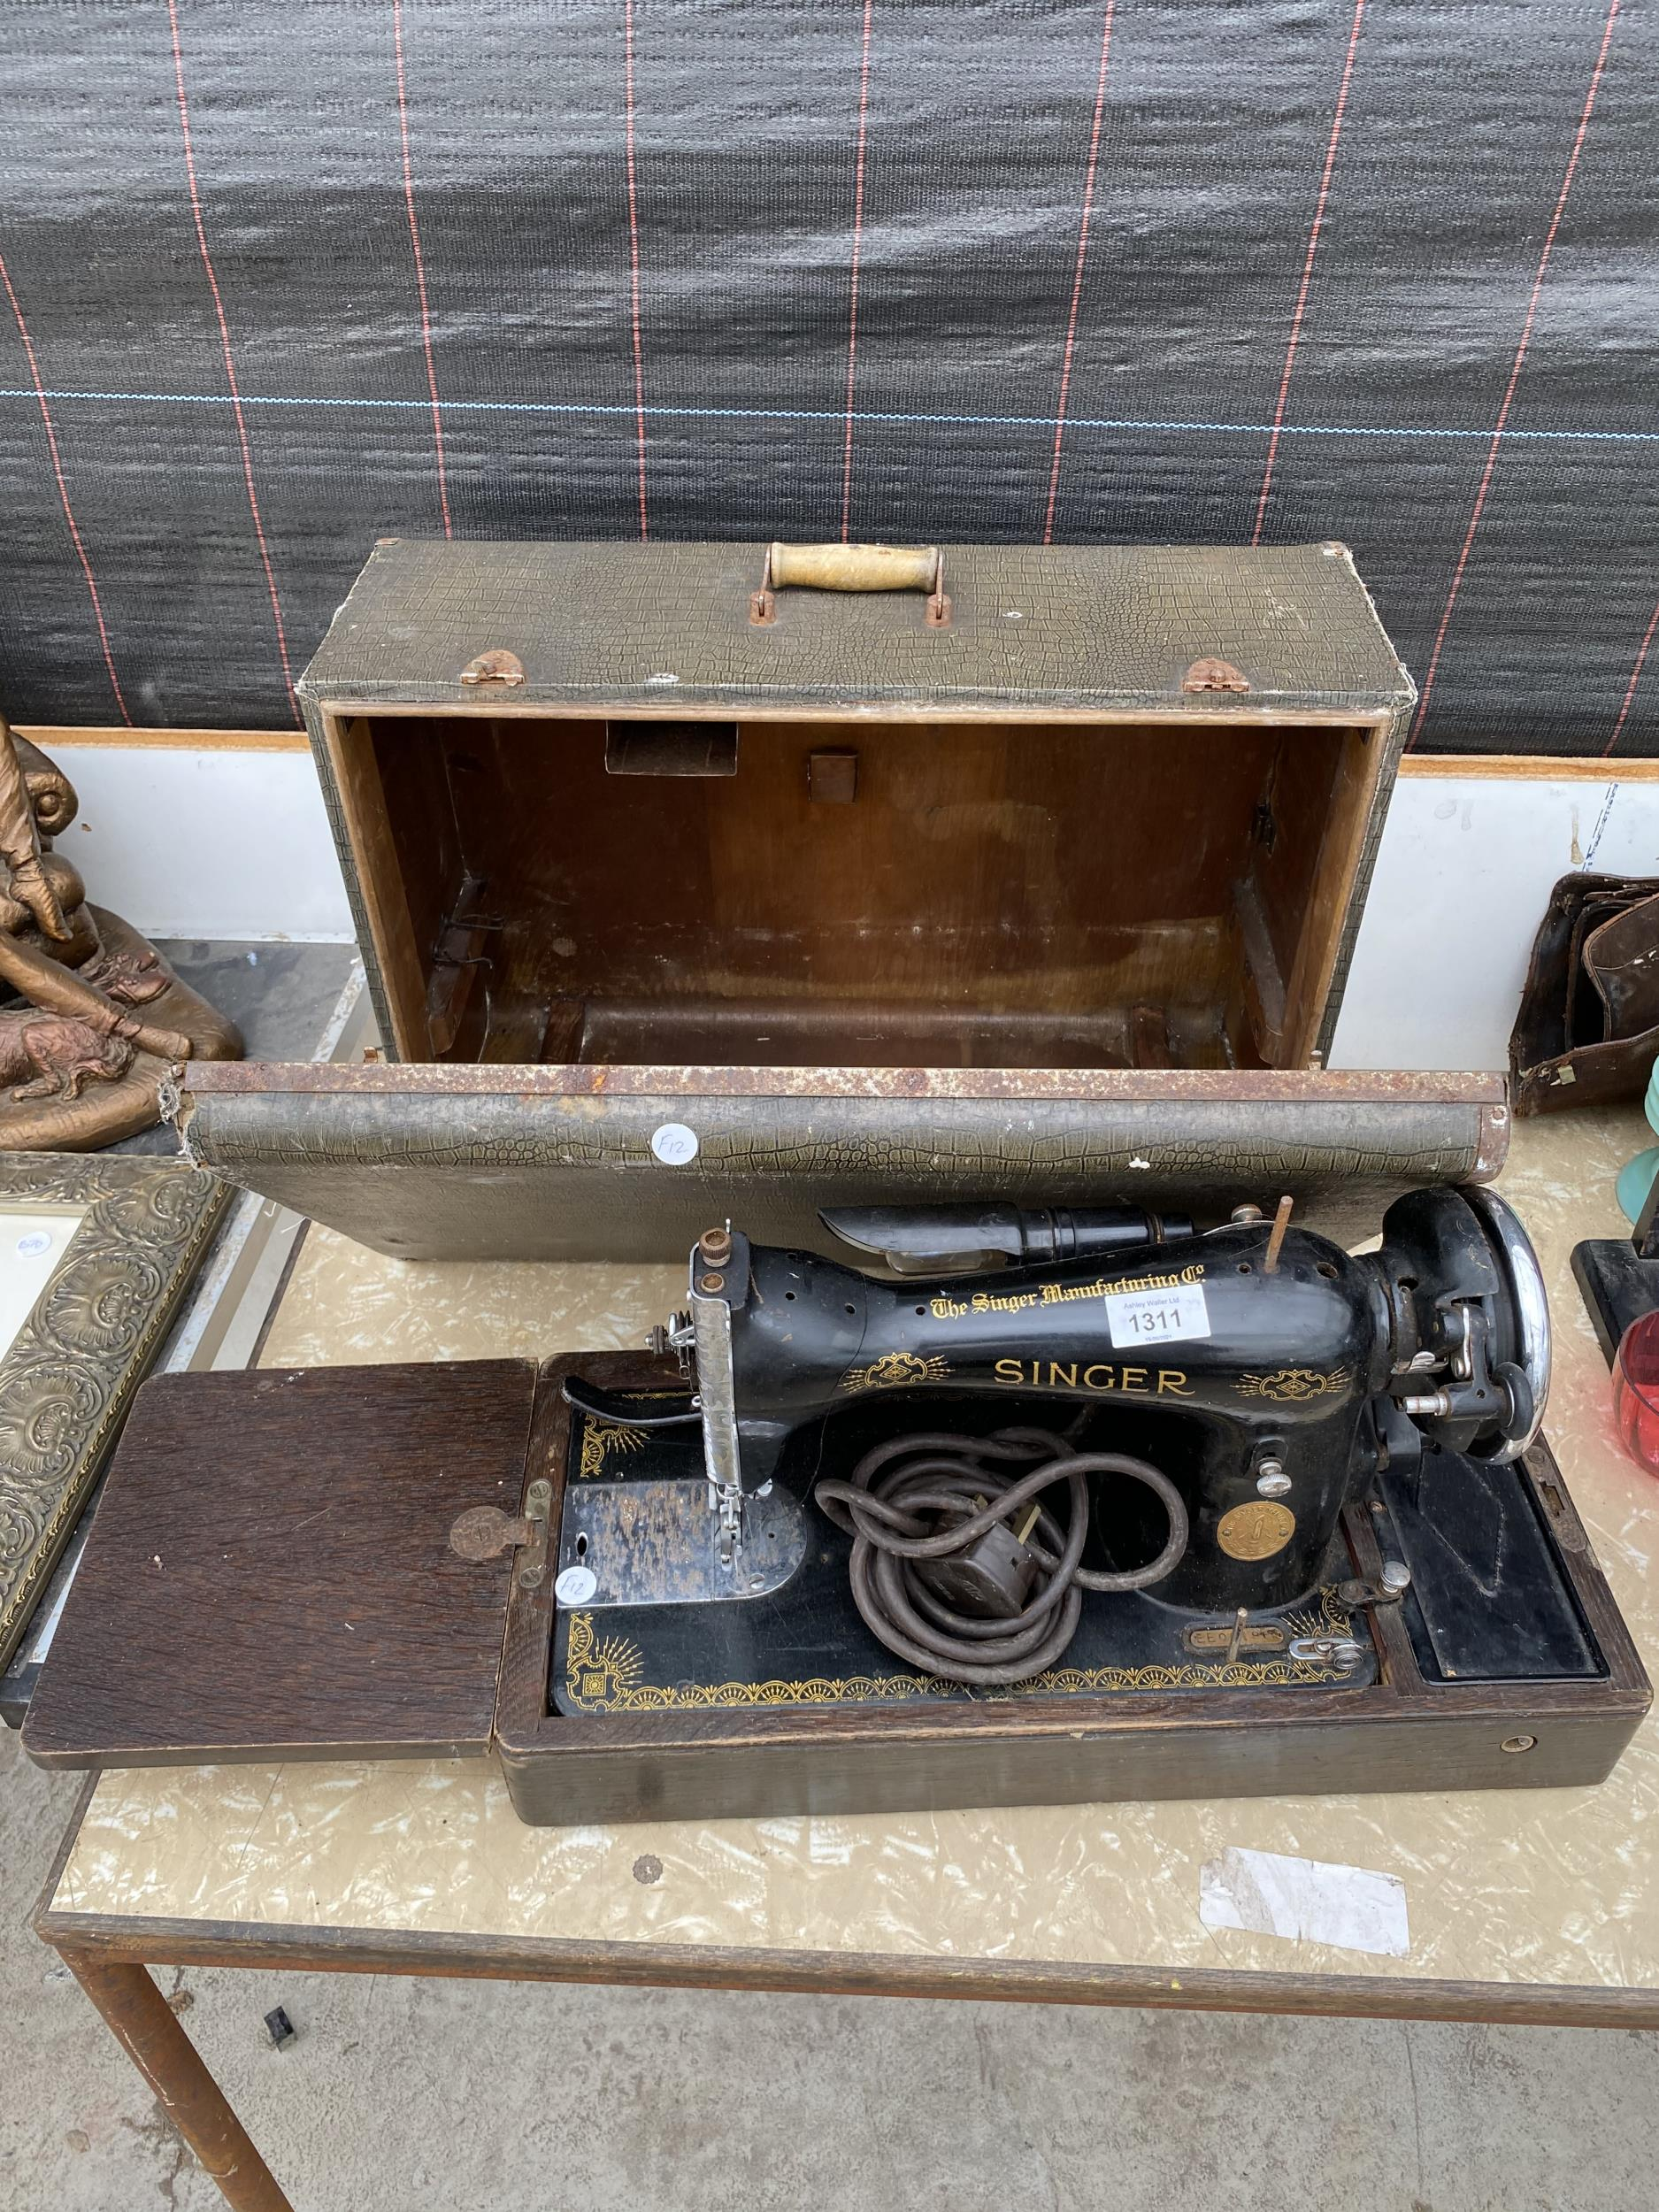 A VINTAGE SINGER SEWING MACHINE WITH LEATHER EFFECT CARRY CASE